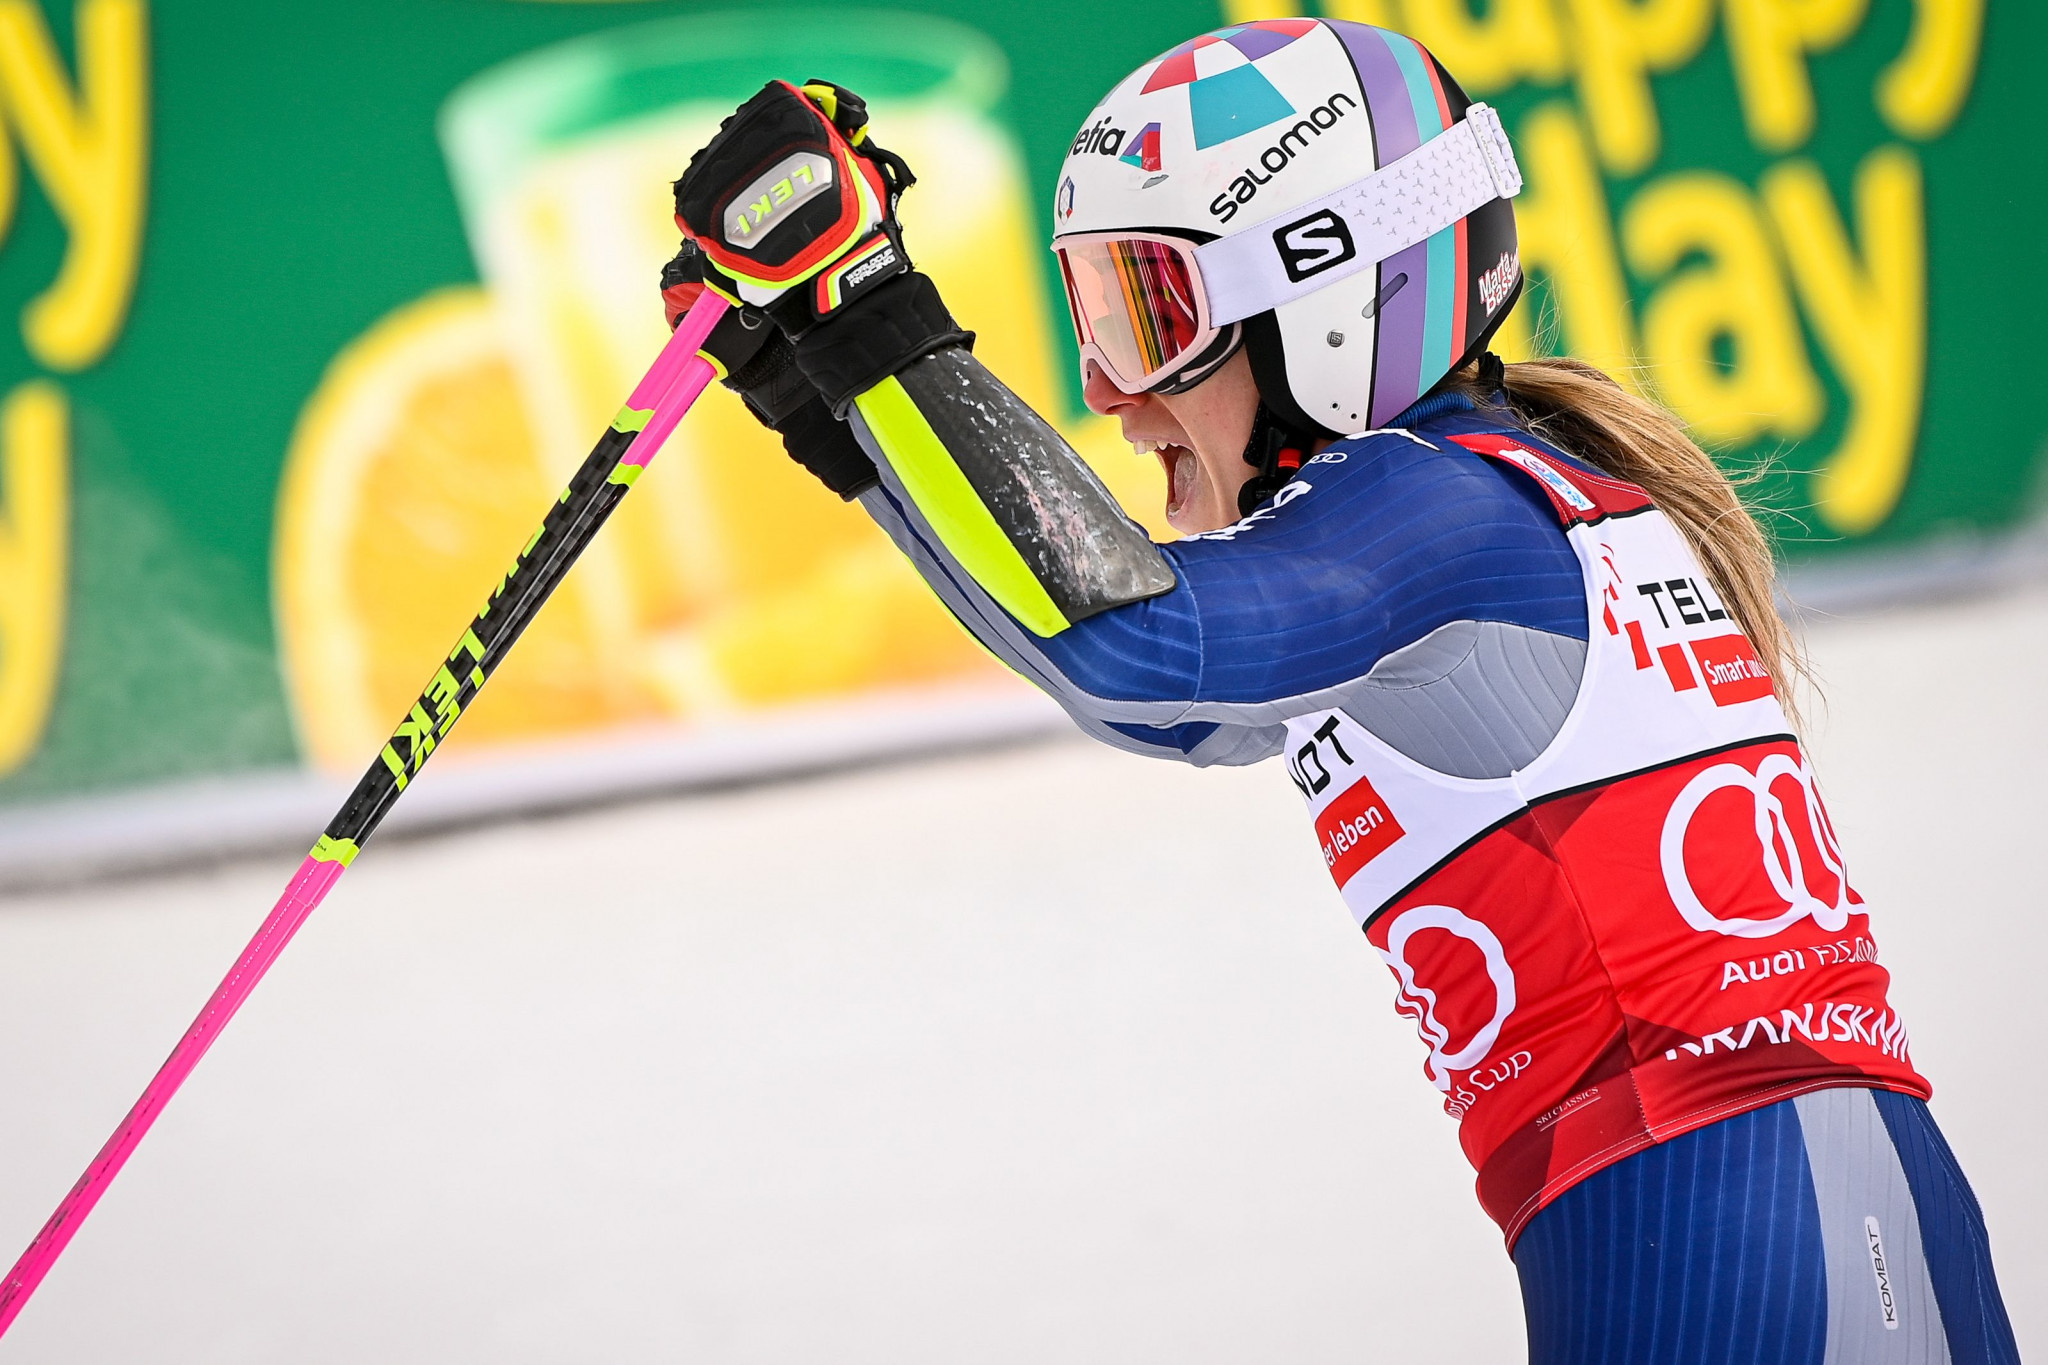 Bassino earns consecutive giant slalom victories in Kranjska Gora